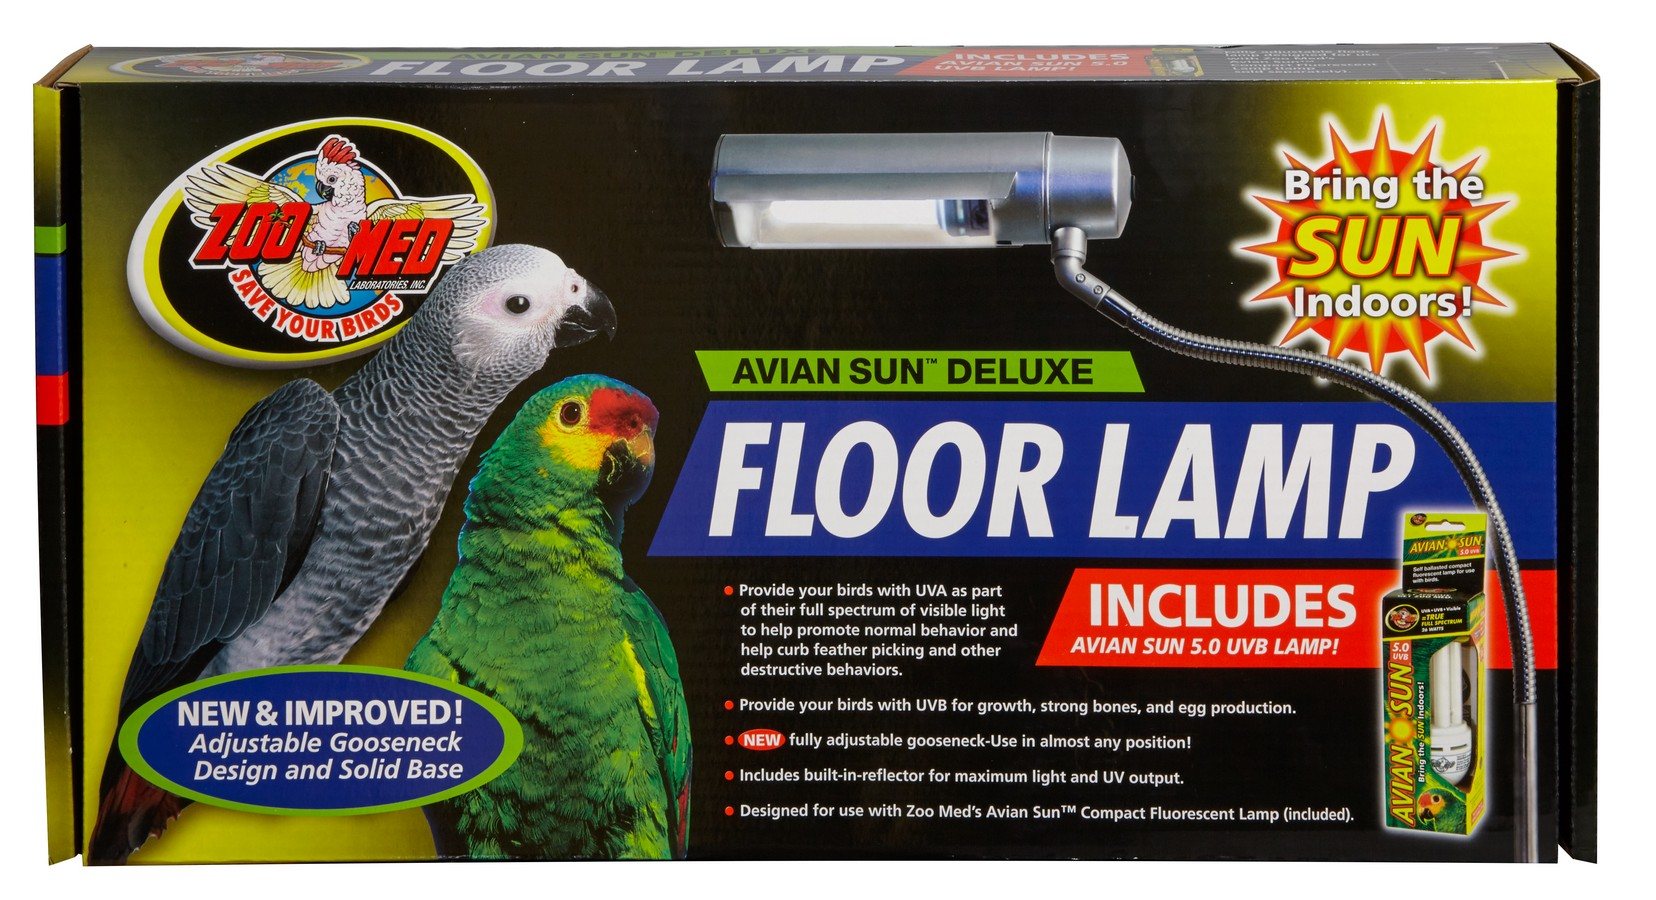 Avian Sun Deluxe Floor Lamp with Avian Sun 5.0 UVB Lamp